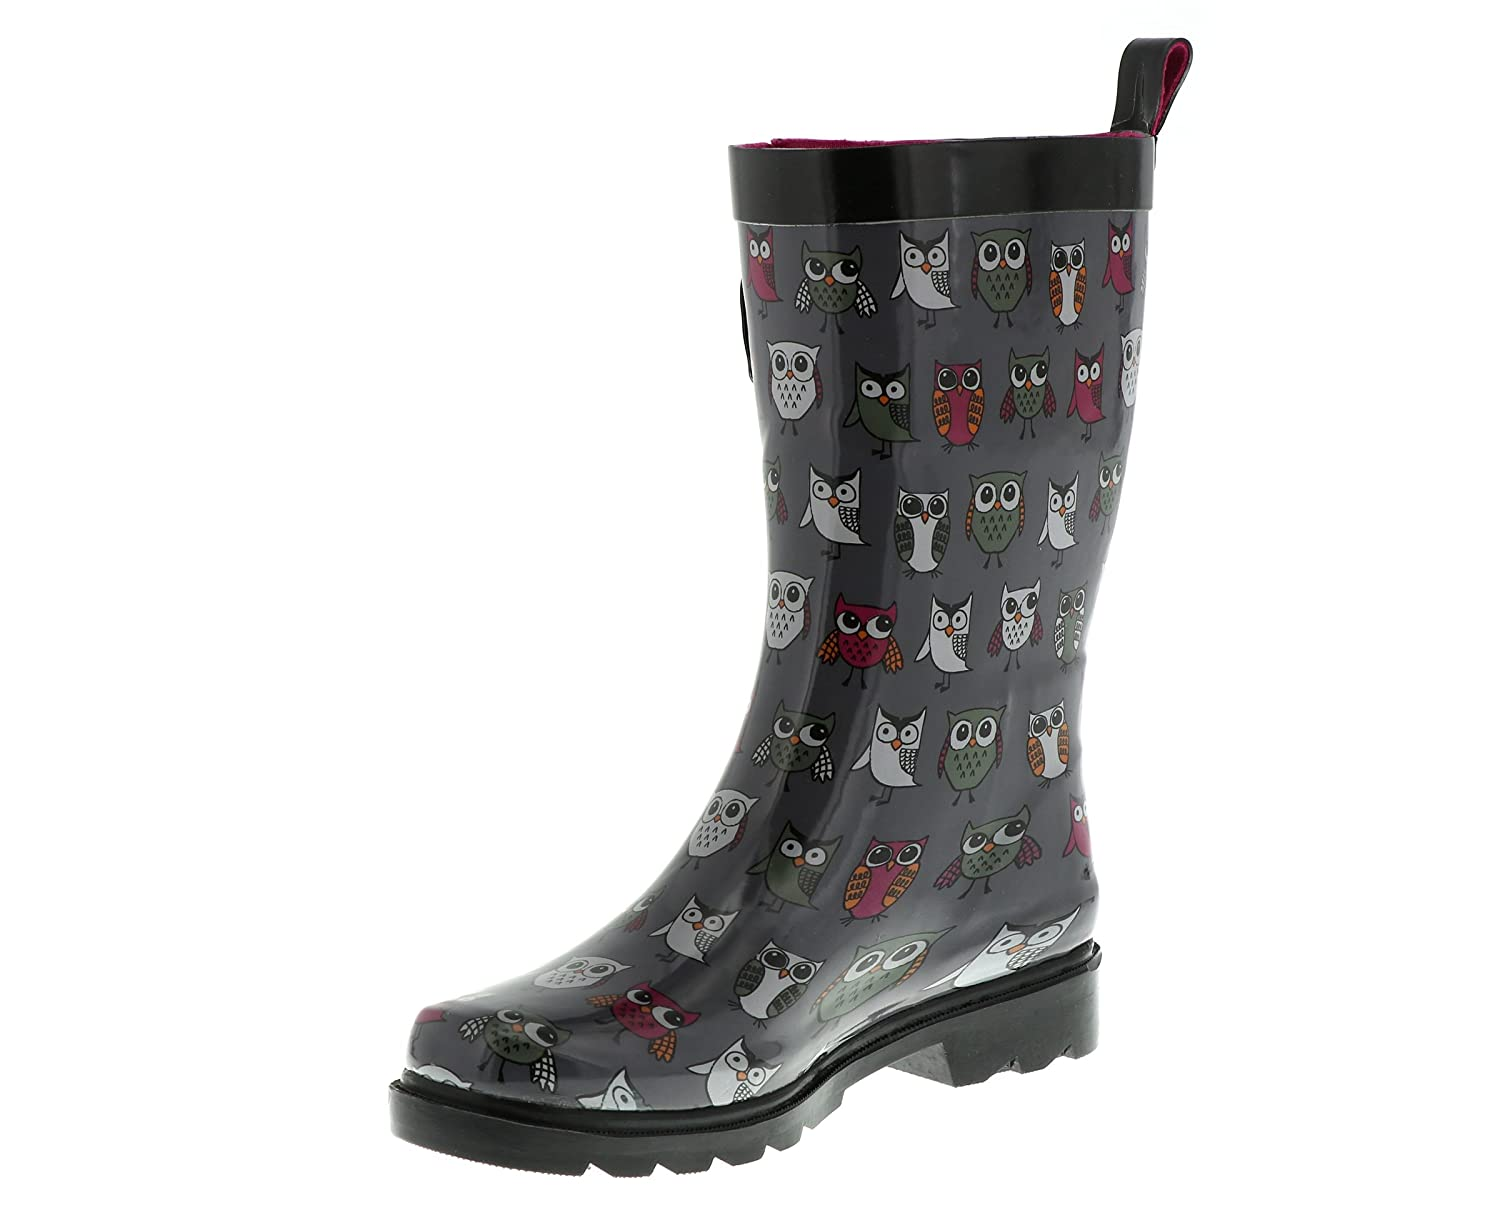 Capelli New York Pop Owls Printed Ladies Short Rubber Rain Boot RBT-3691-GY CMB-6